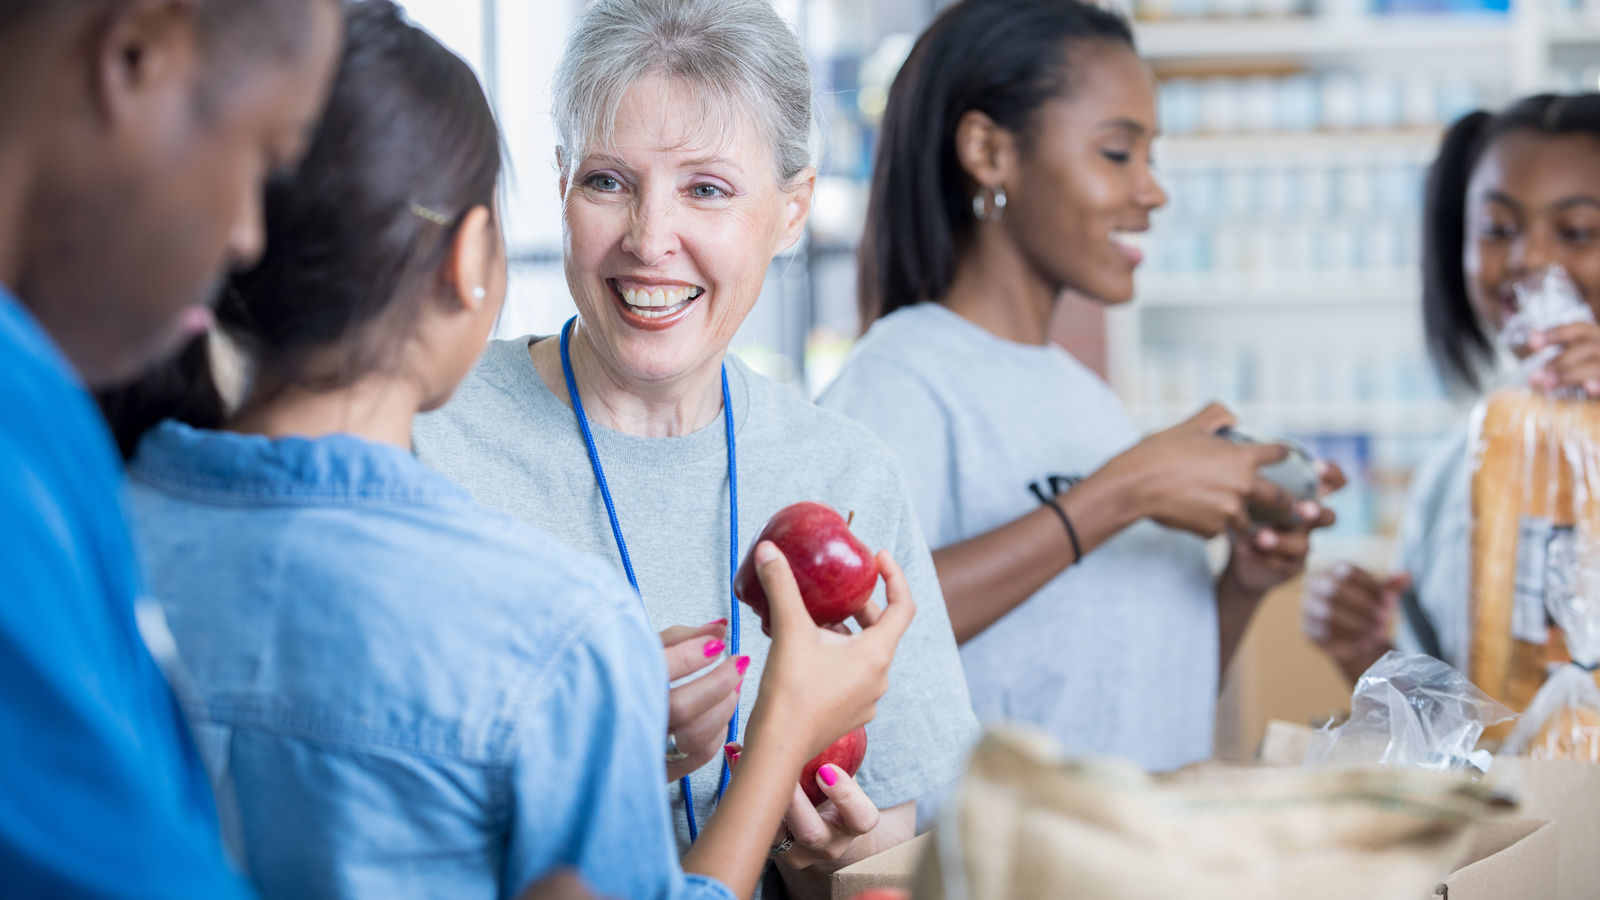 People Hold Apples at Foodbank